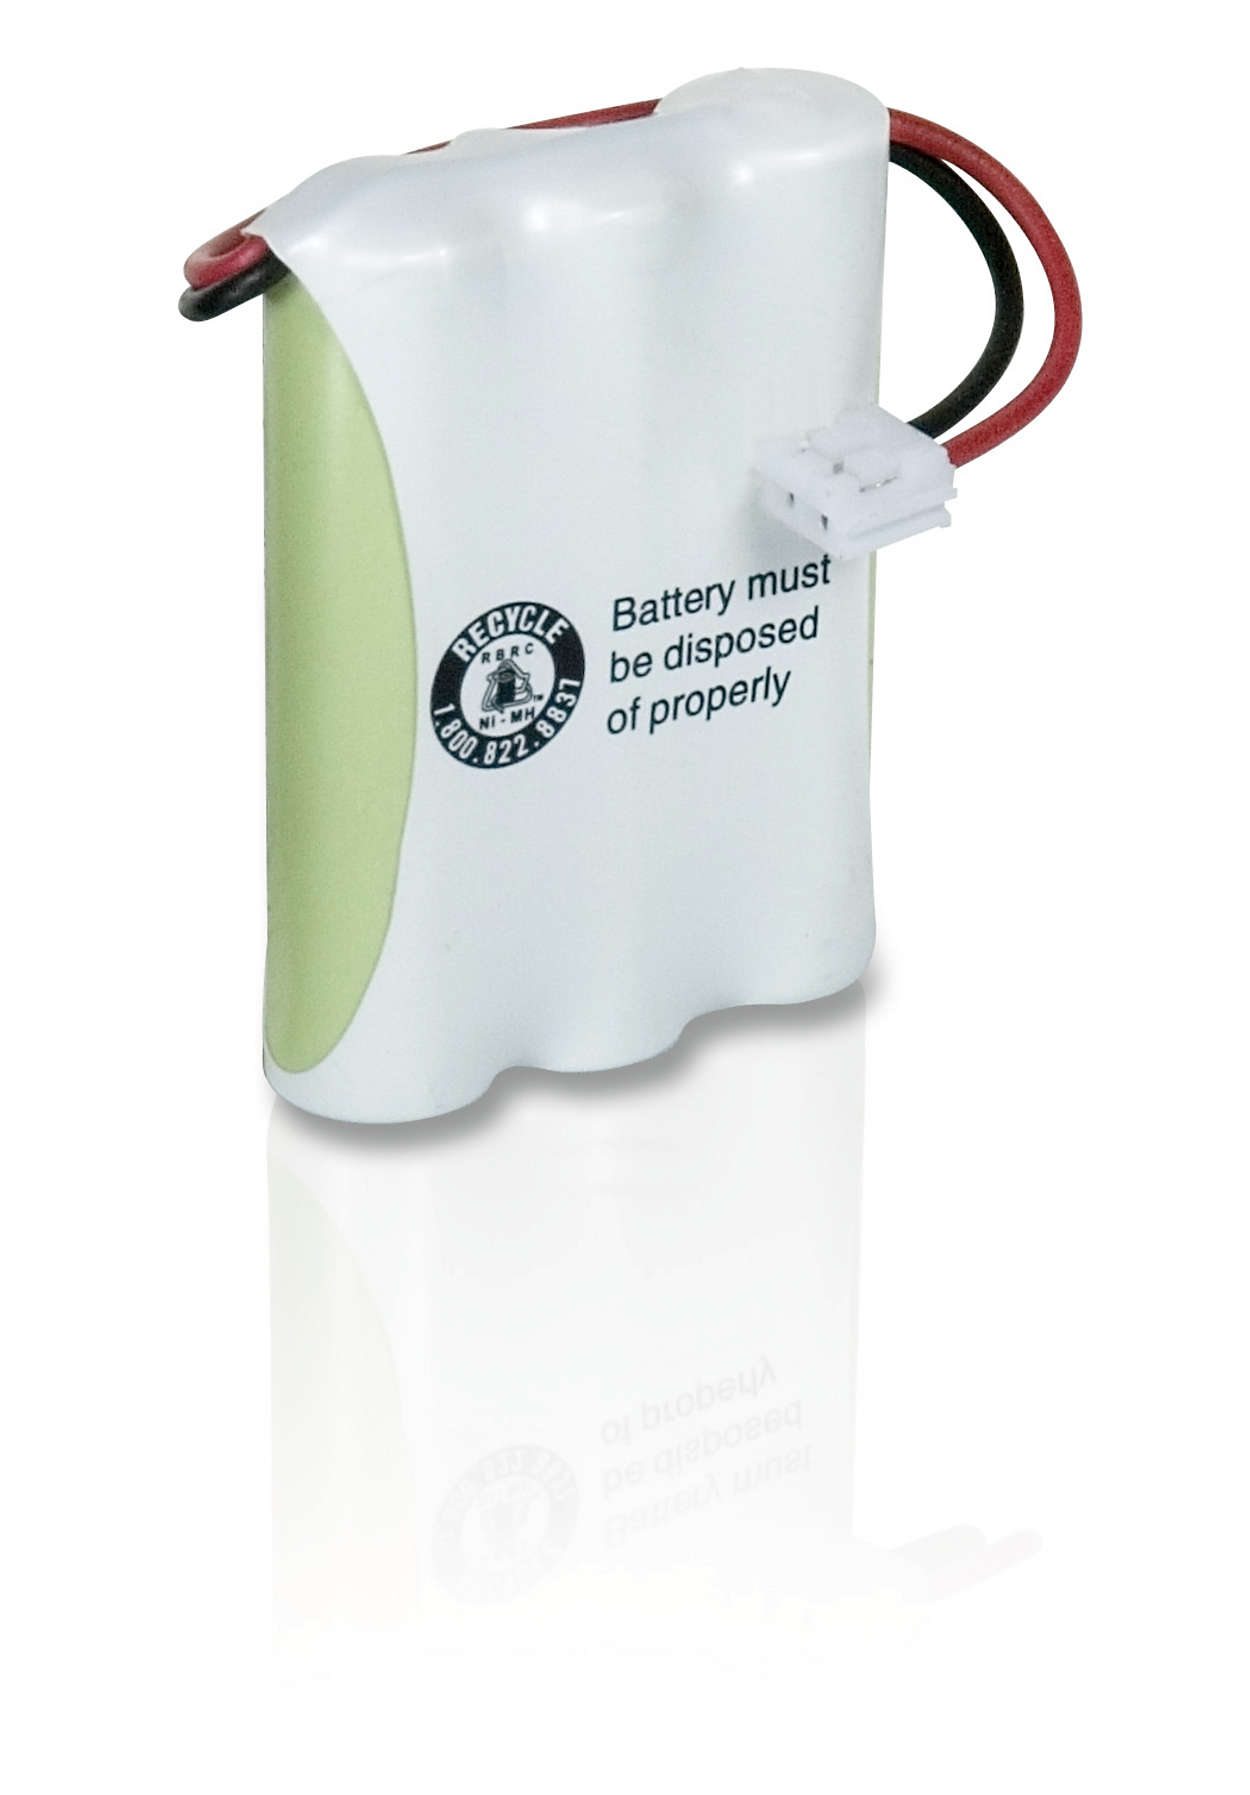 Cordless phone replacement battery.